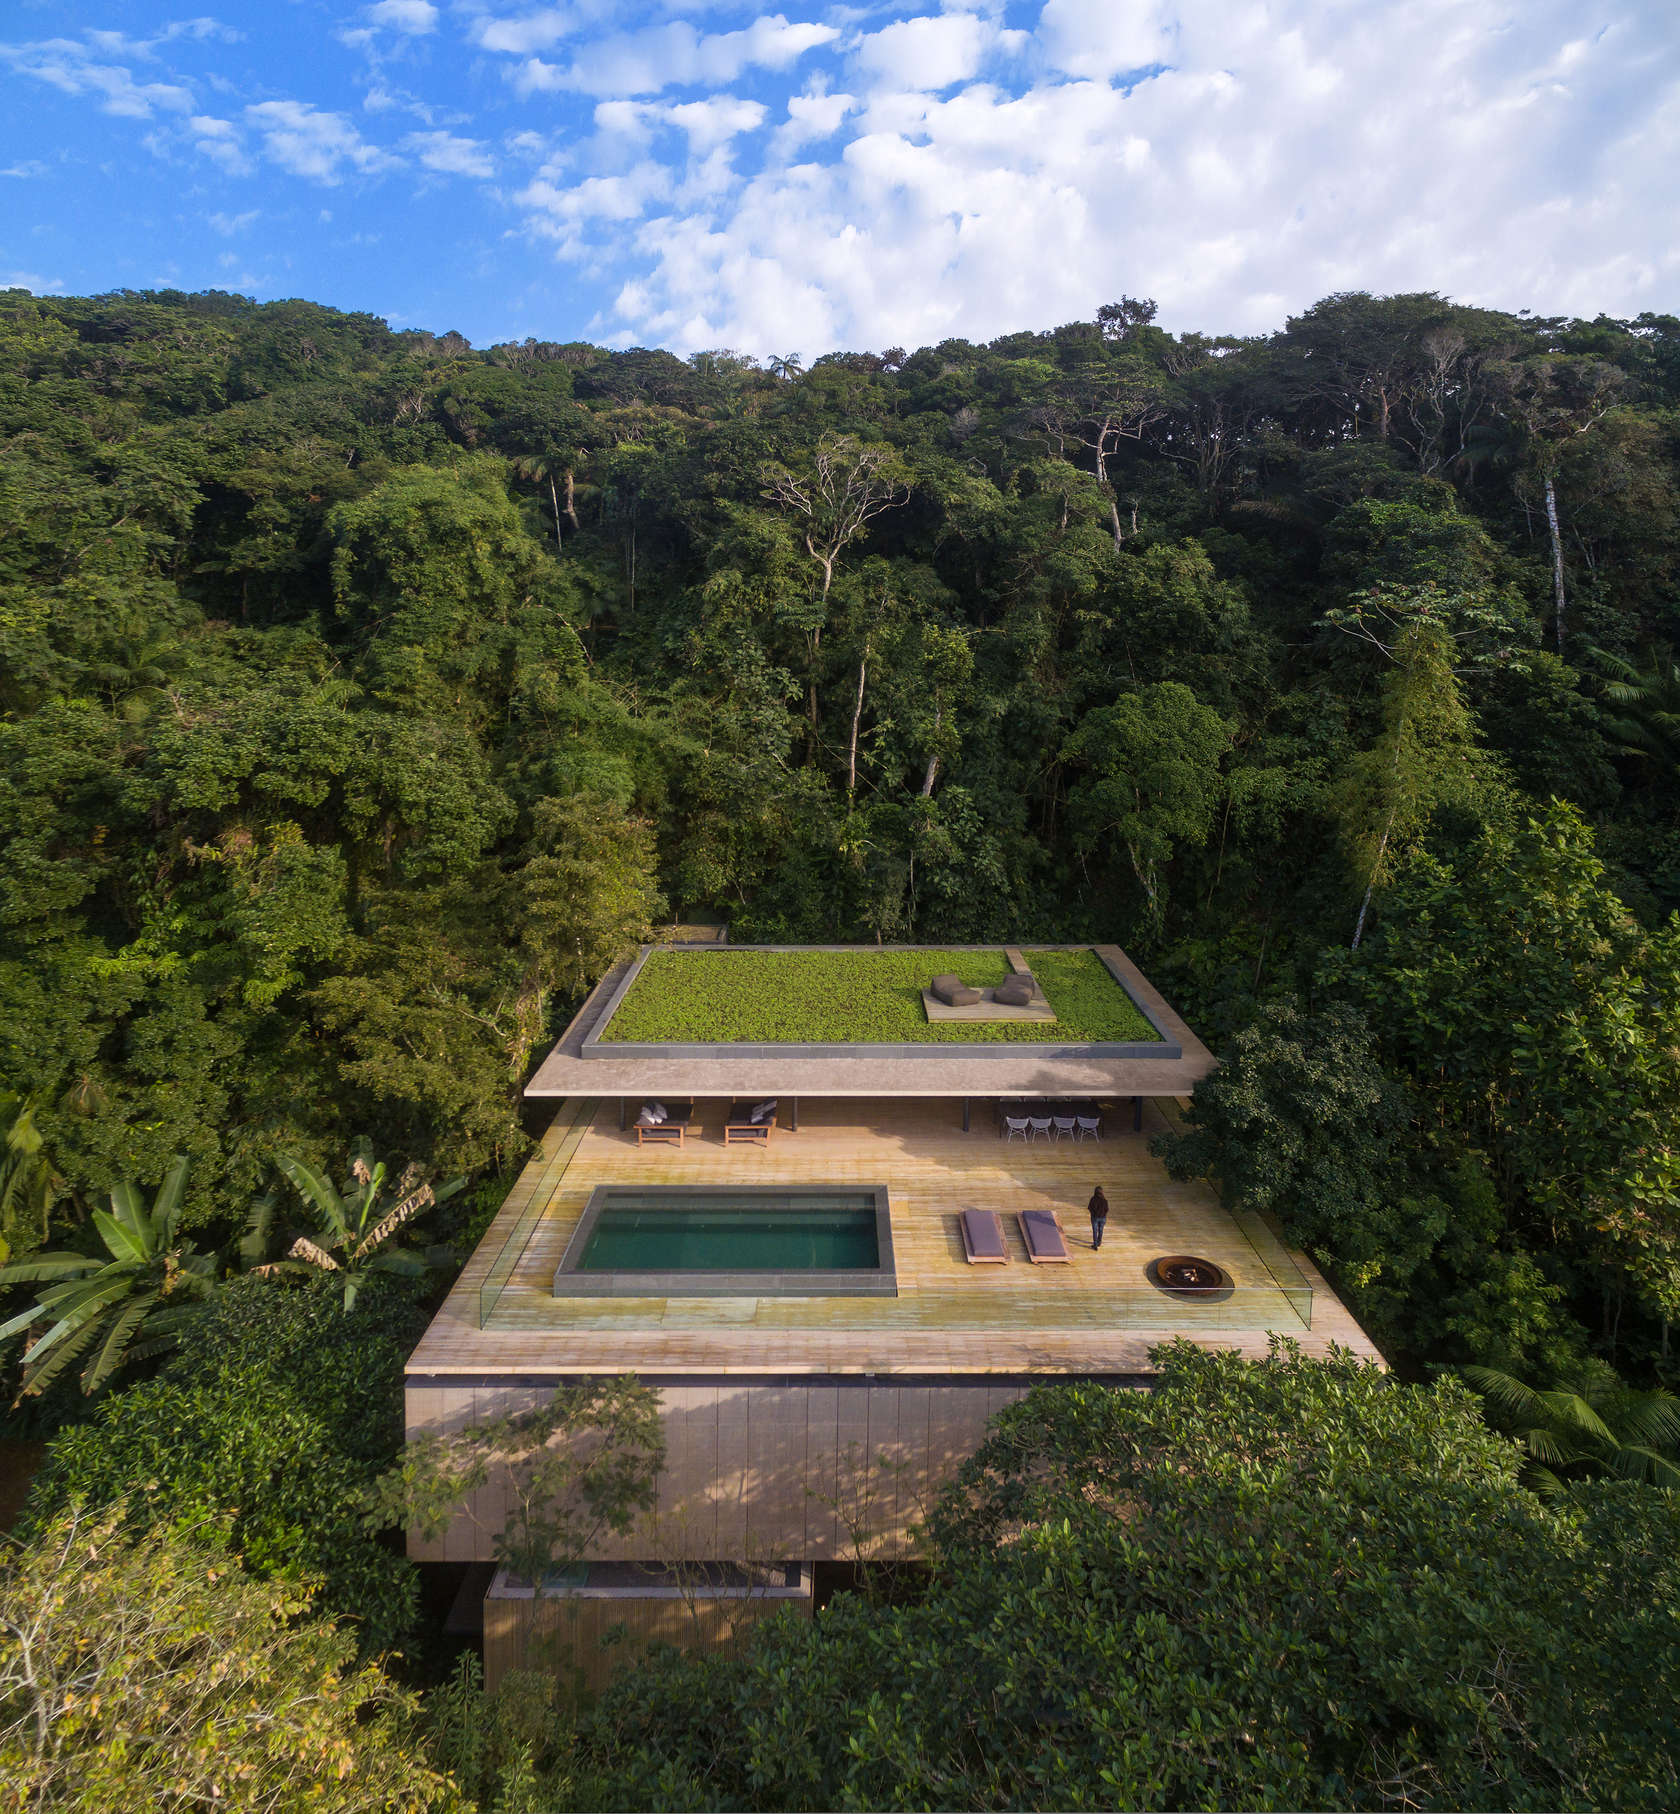 Stunning modern house in Brazil's rain forest has cozy sunken living room, green roof